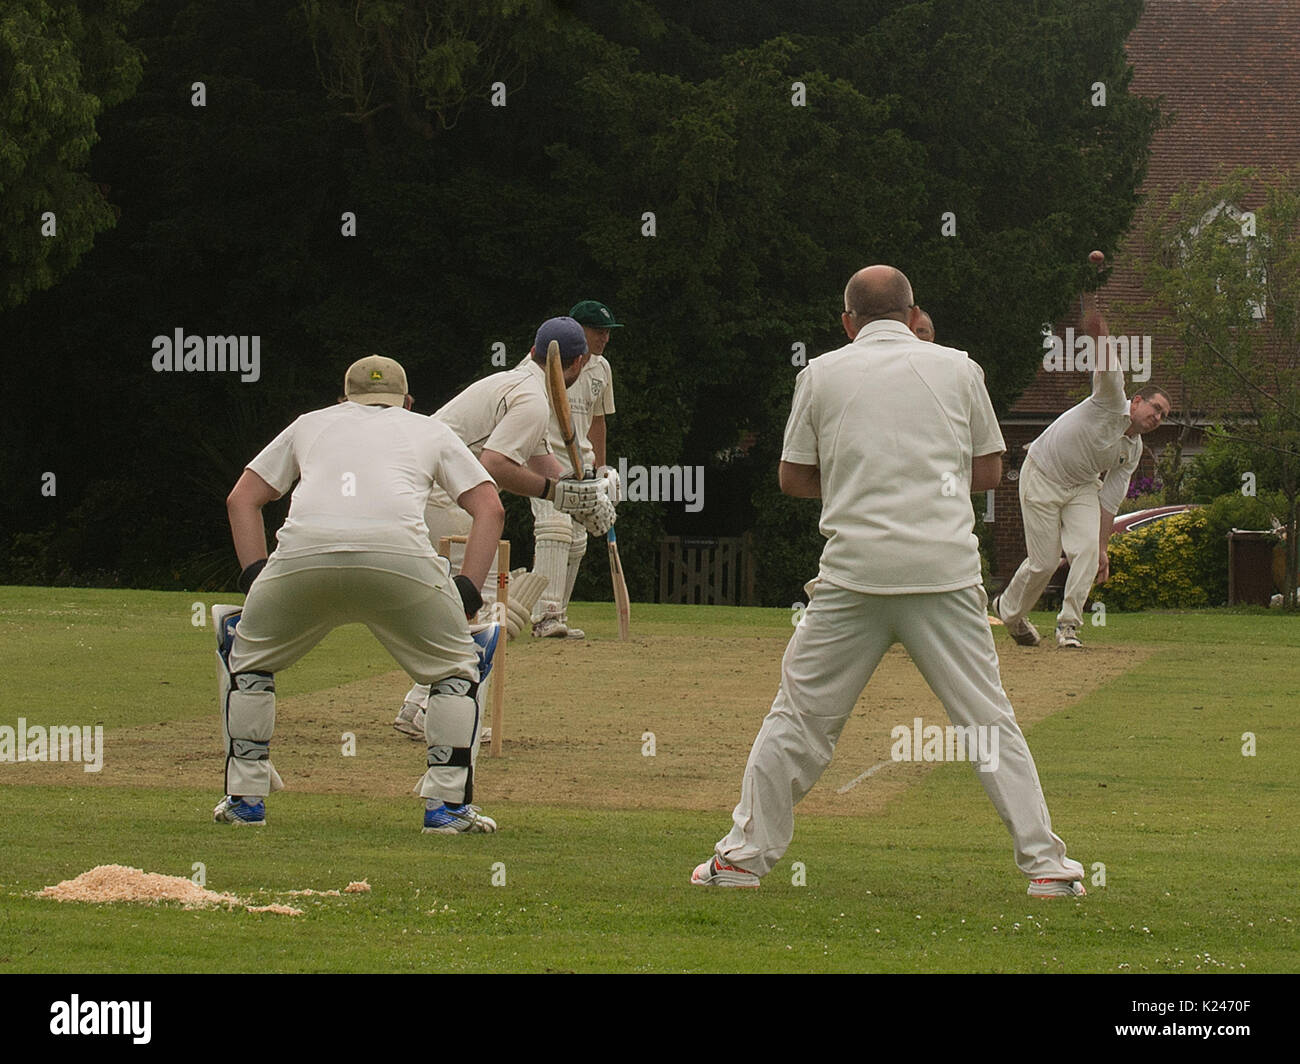 Cricket match at Benenden, Kent Stock Photo